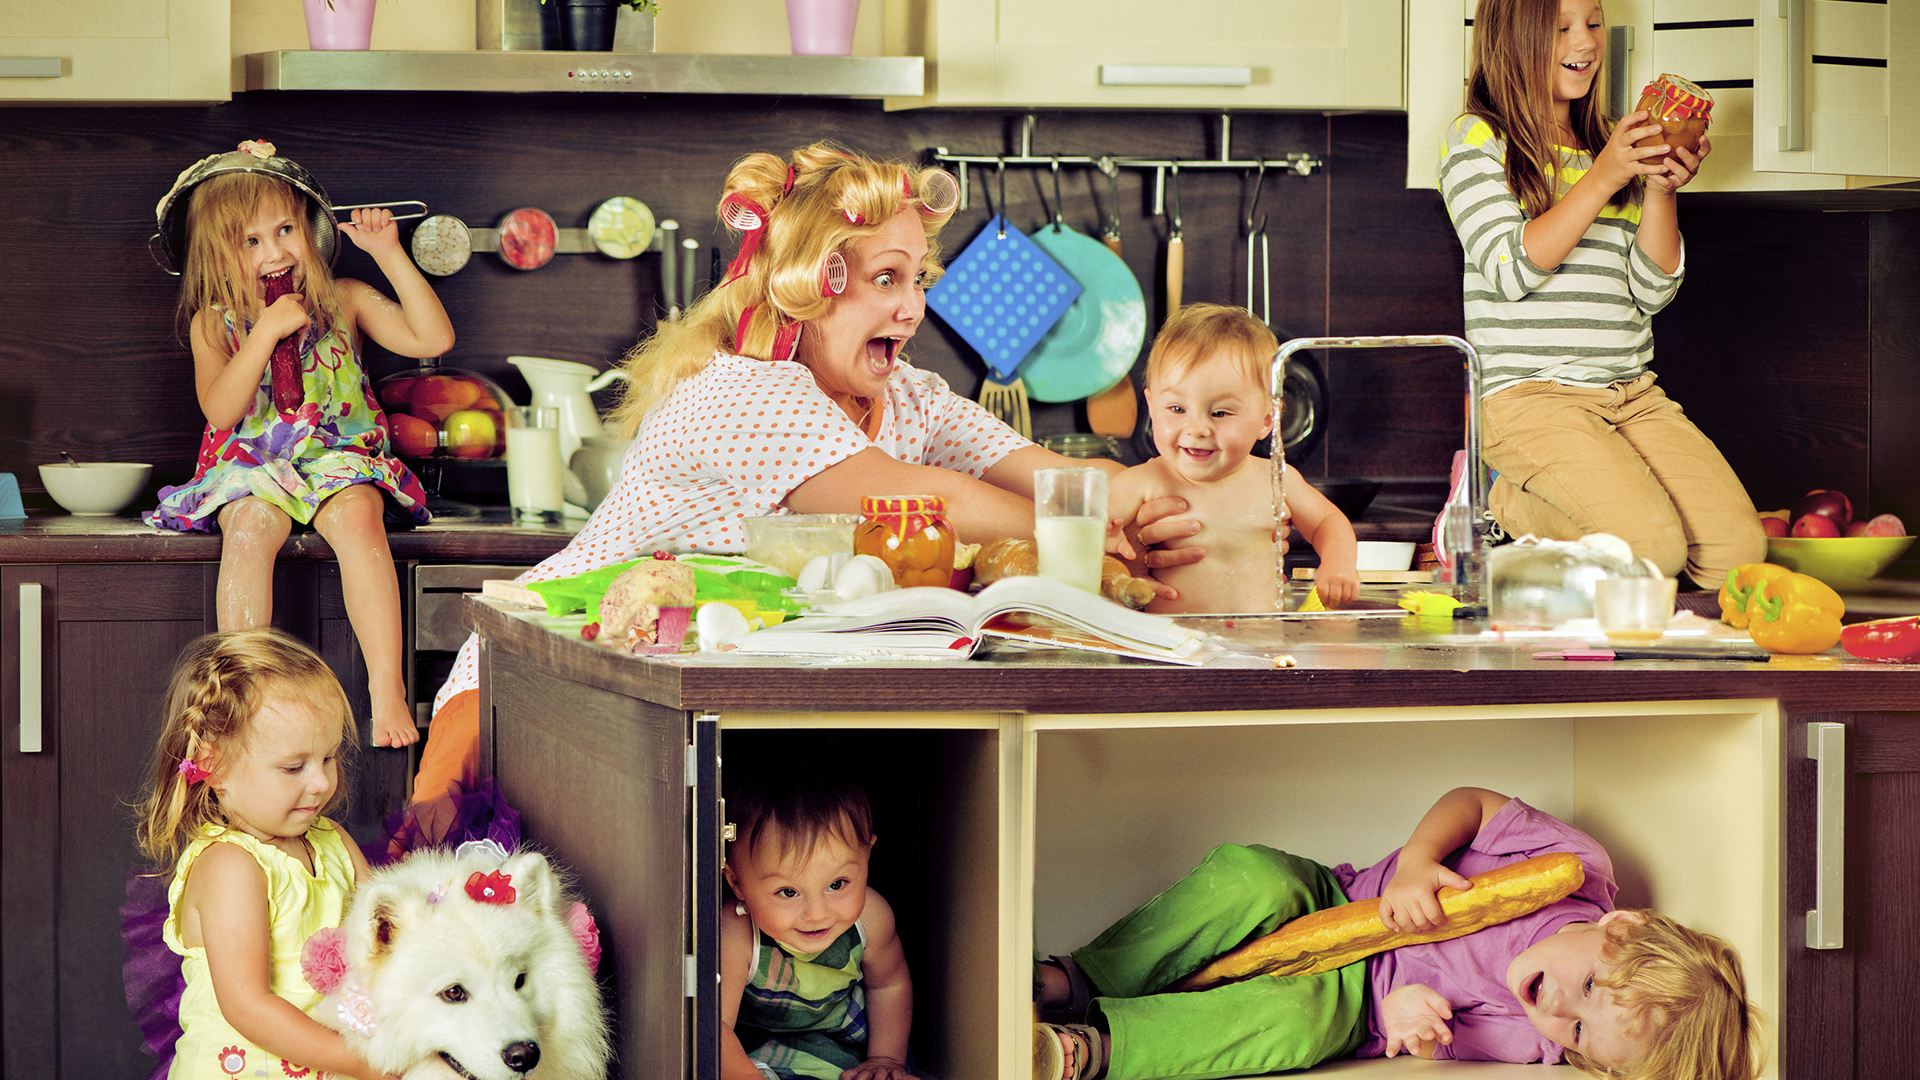 Mother with lots of kids | PregnancyAndBaby.com